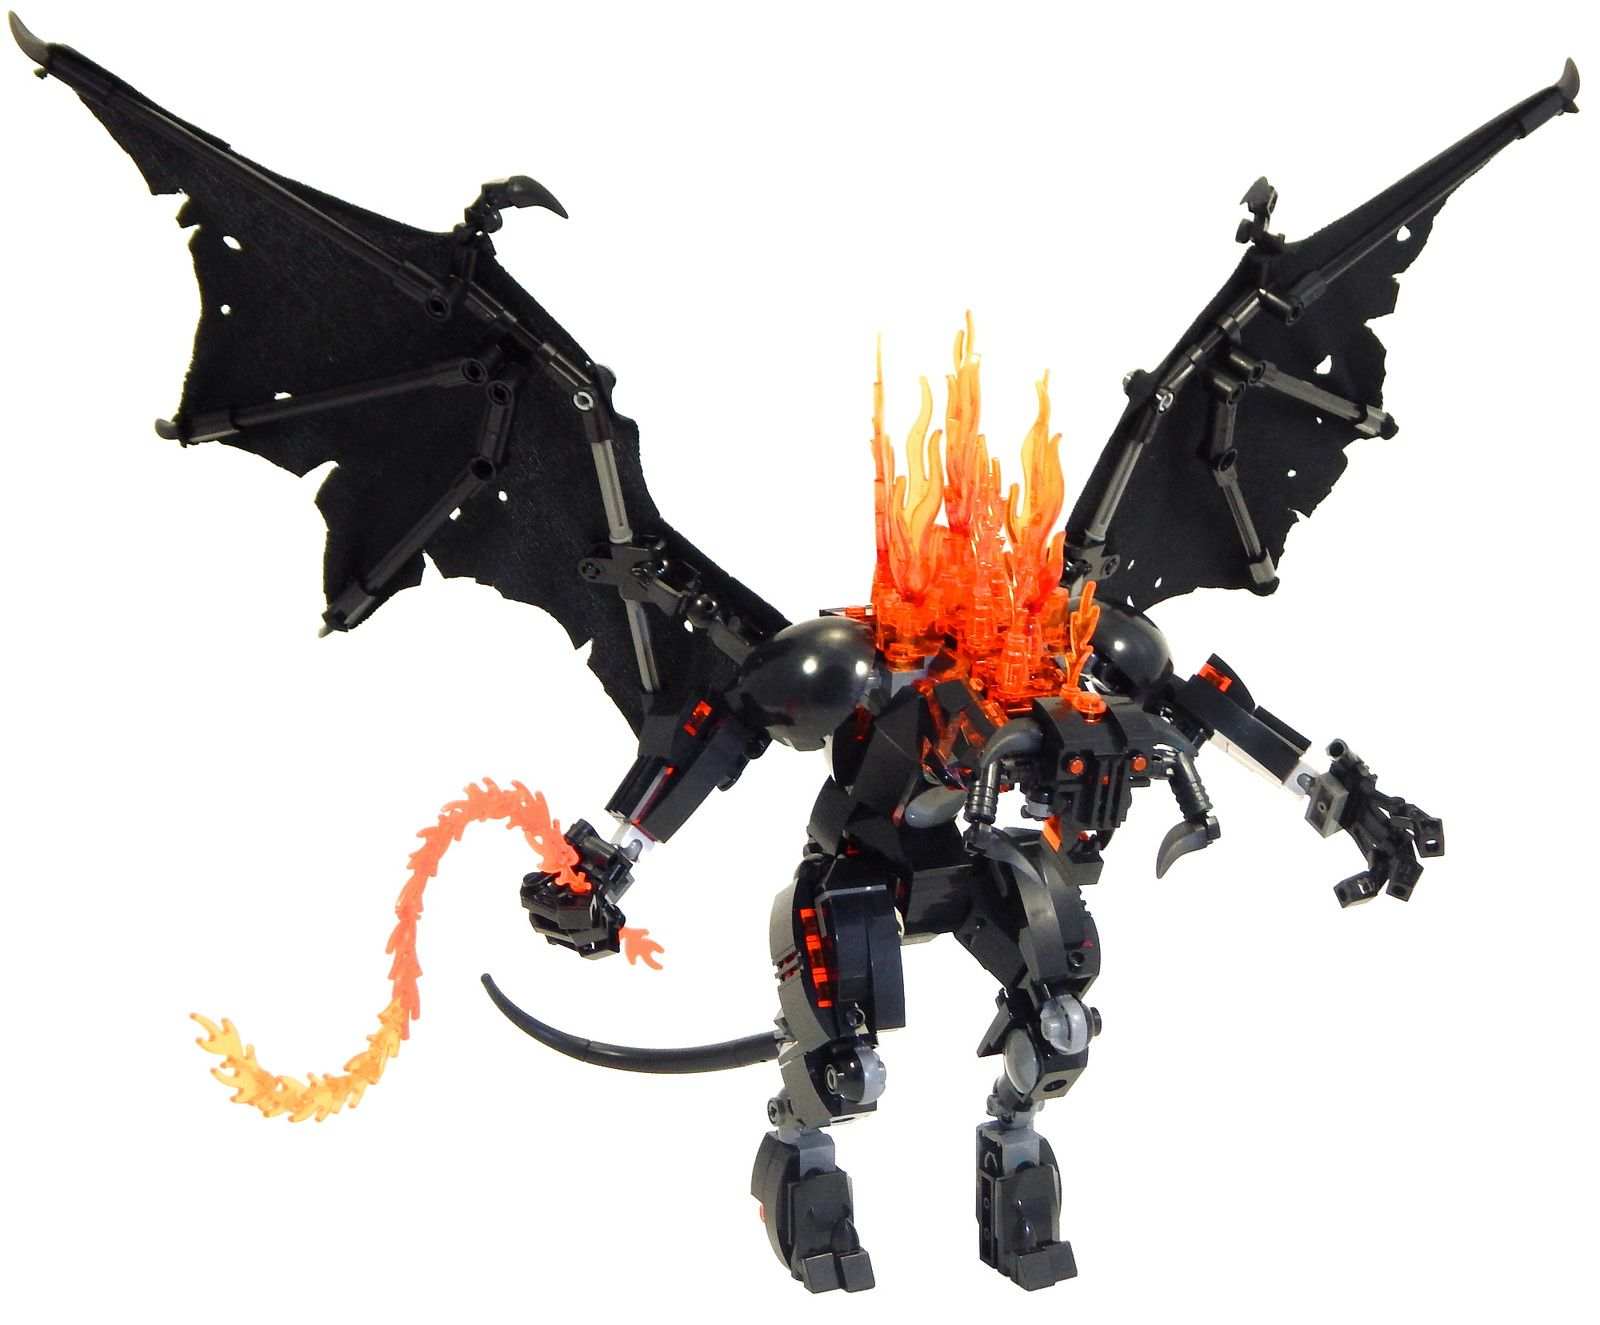 The Balrog Of Moria Balrog Lego Design Lord Of The Rings